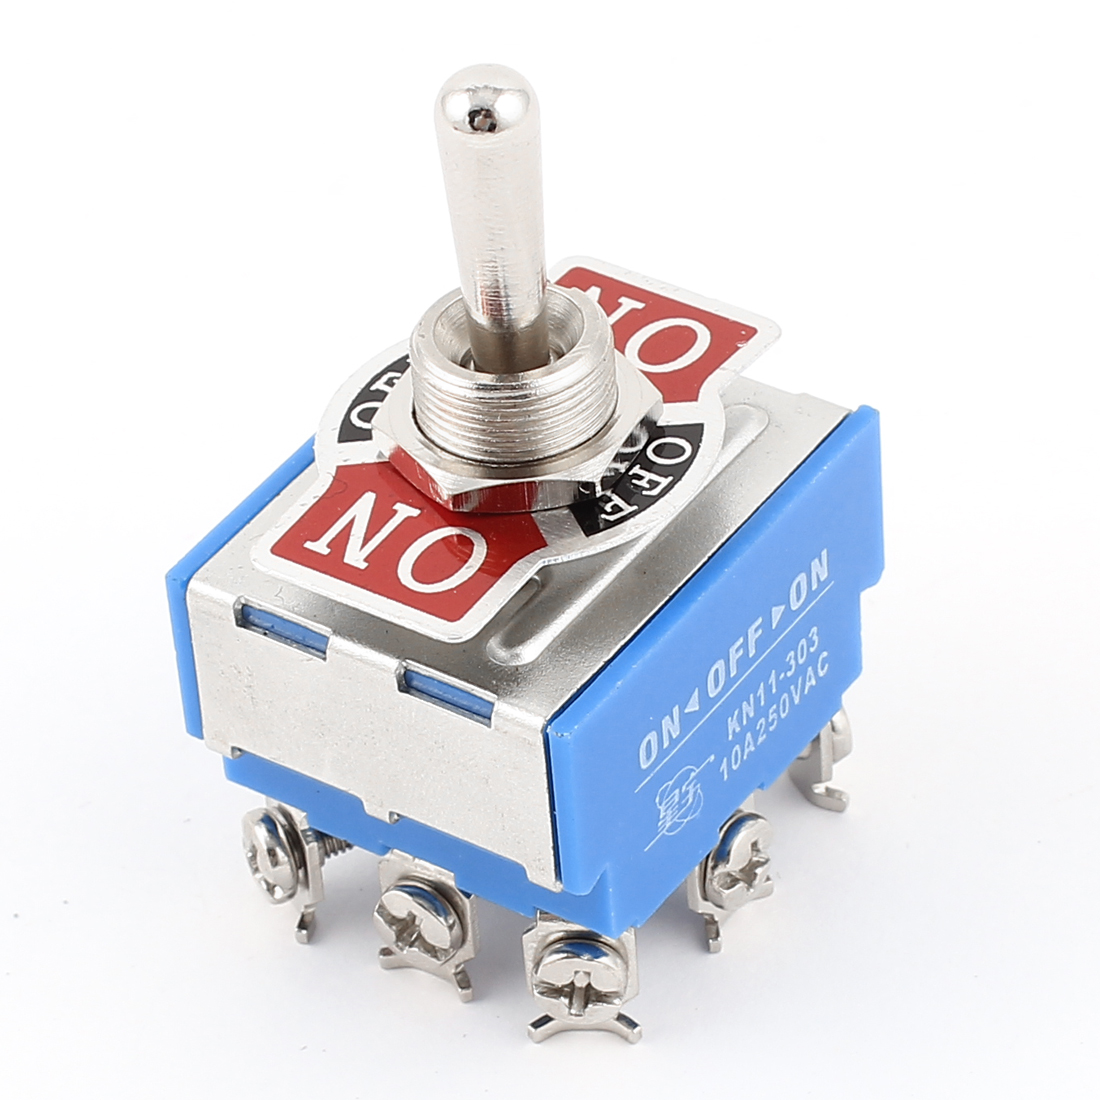 AC 250V 10A 9 Screw Terminals 3PDT 3Position ON/OFF/ON Latching Toggle Switch